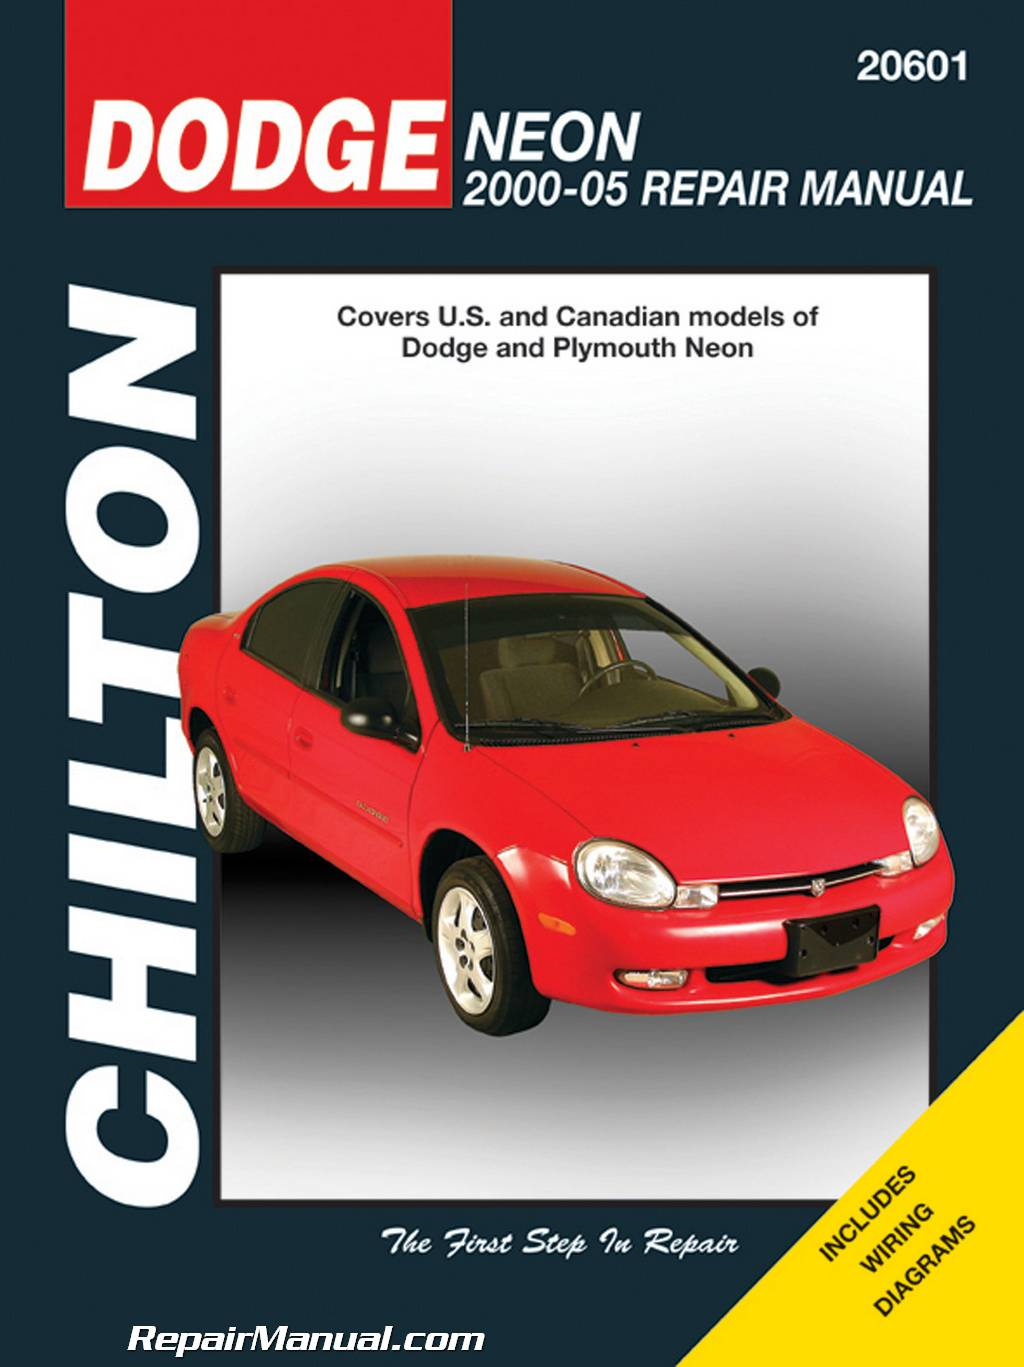 Honda Vin Decoder >> Dodge Neon 2000-2005 Chilton Car Repair Manual